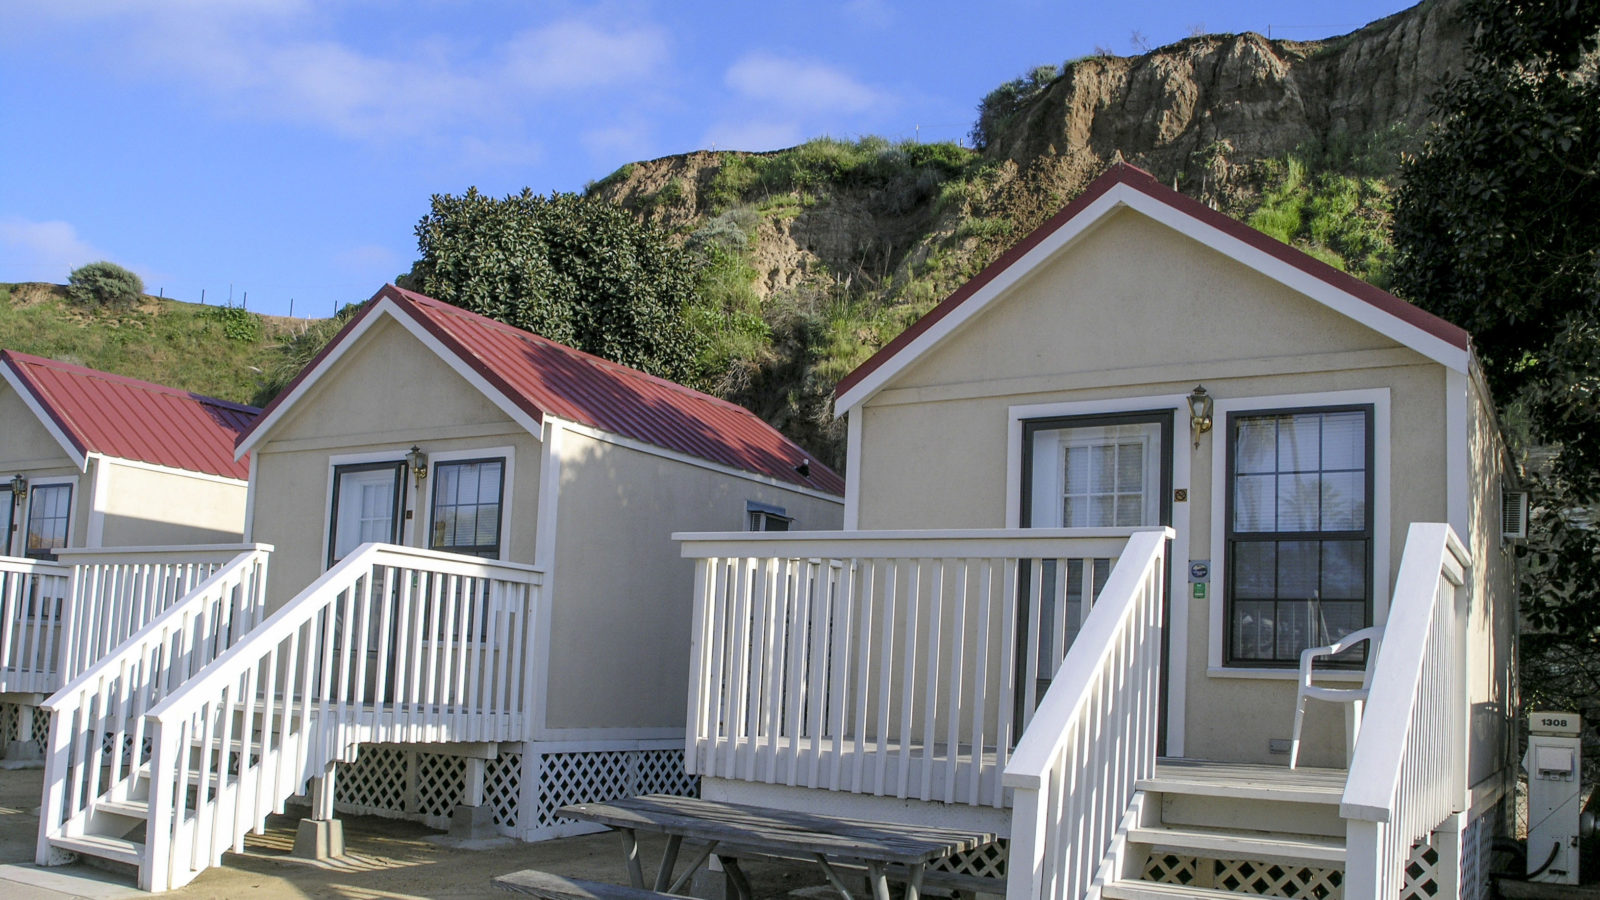 An attractive row of beach cottages.